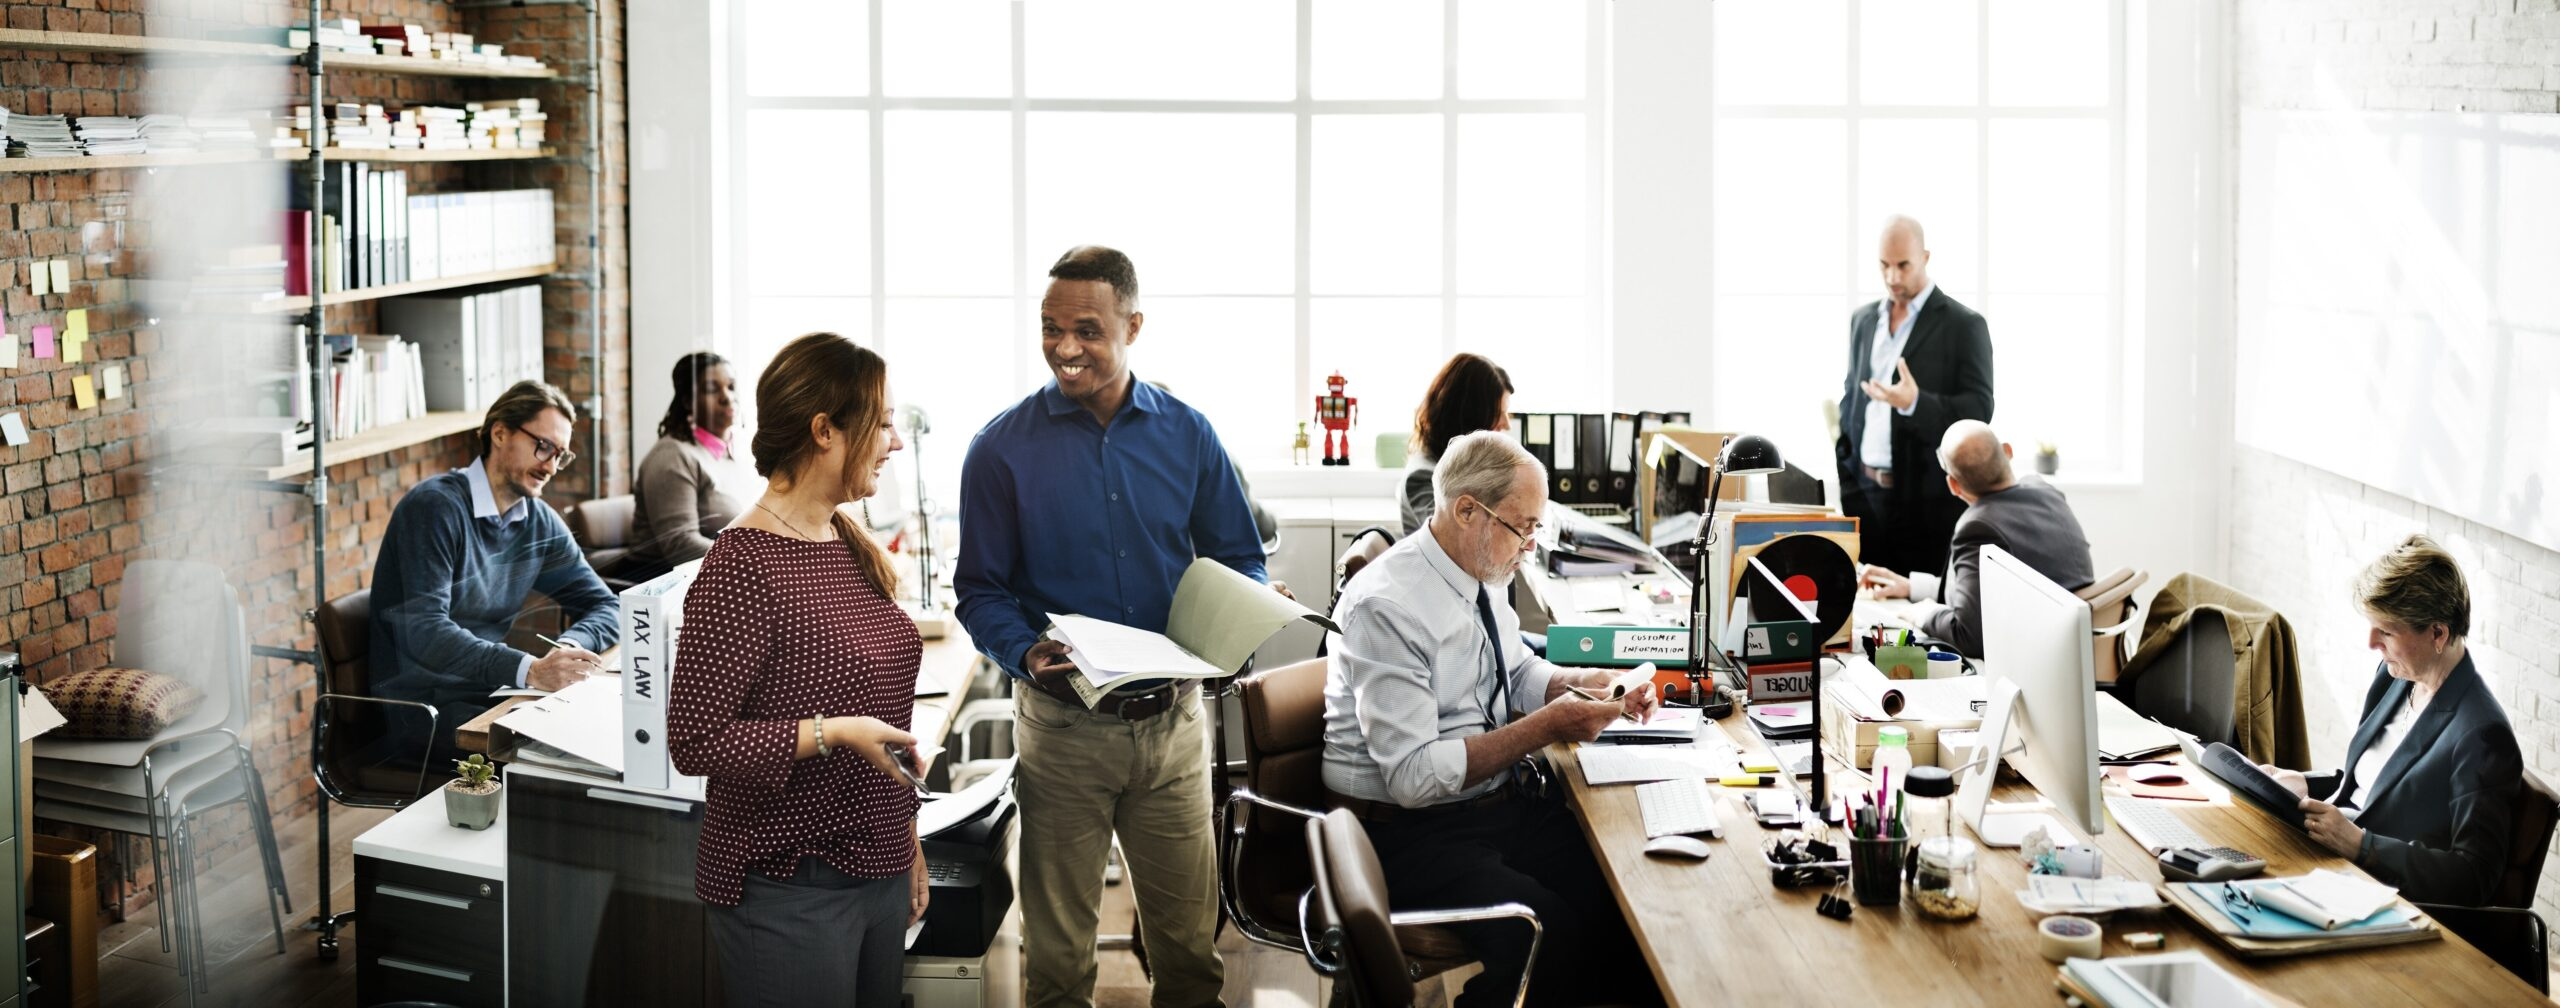 How Technology is Preparing Businesses for the Hybrid Working Environment